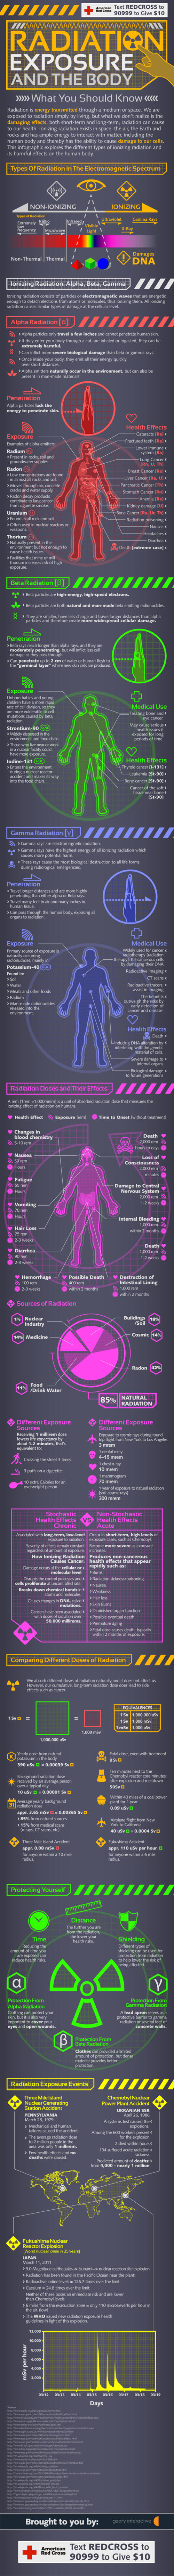 radiation infographic